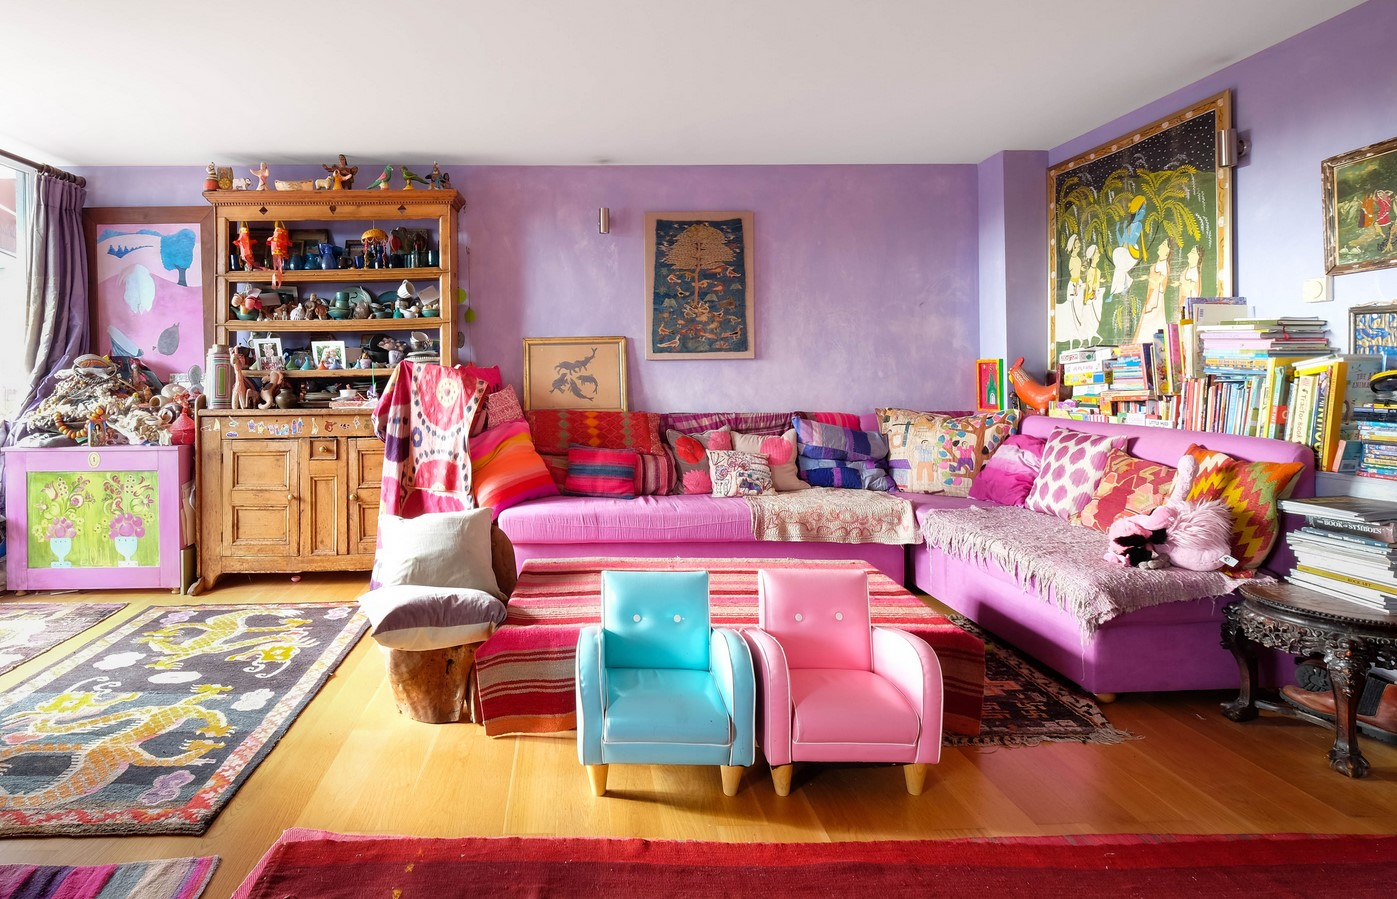 mix-purple-and-orange-in-home-décor